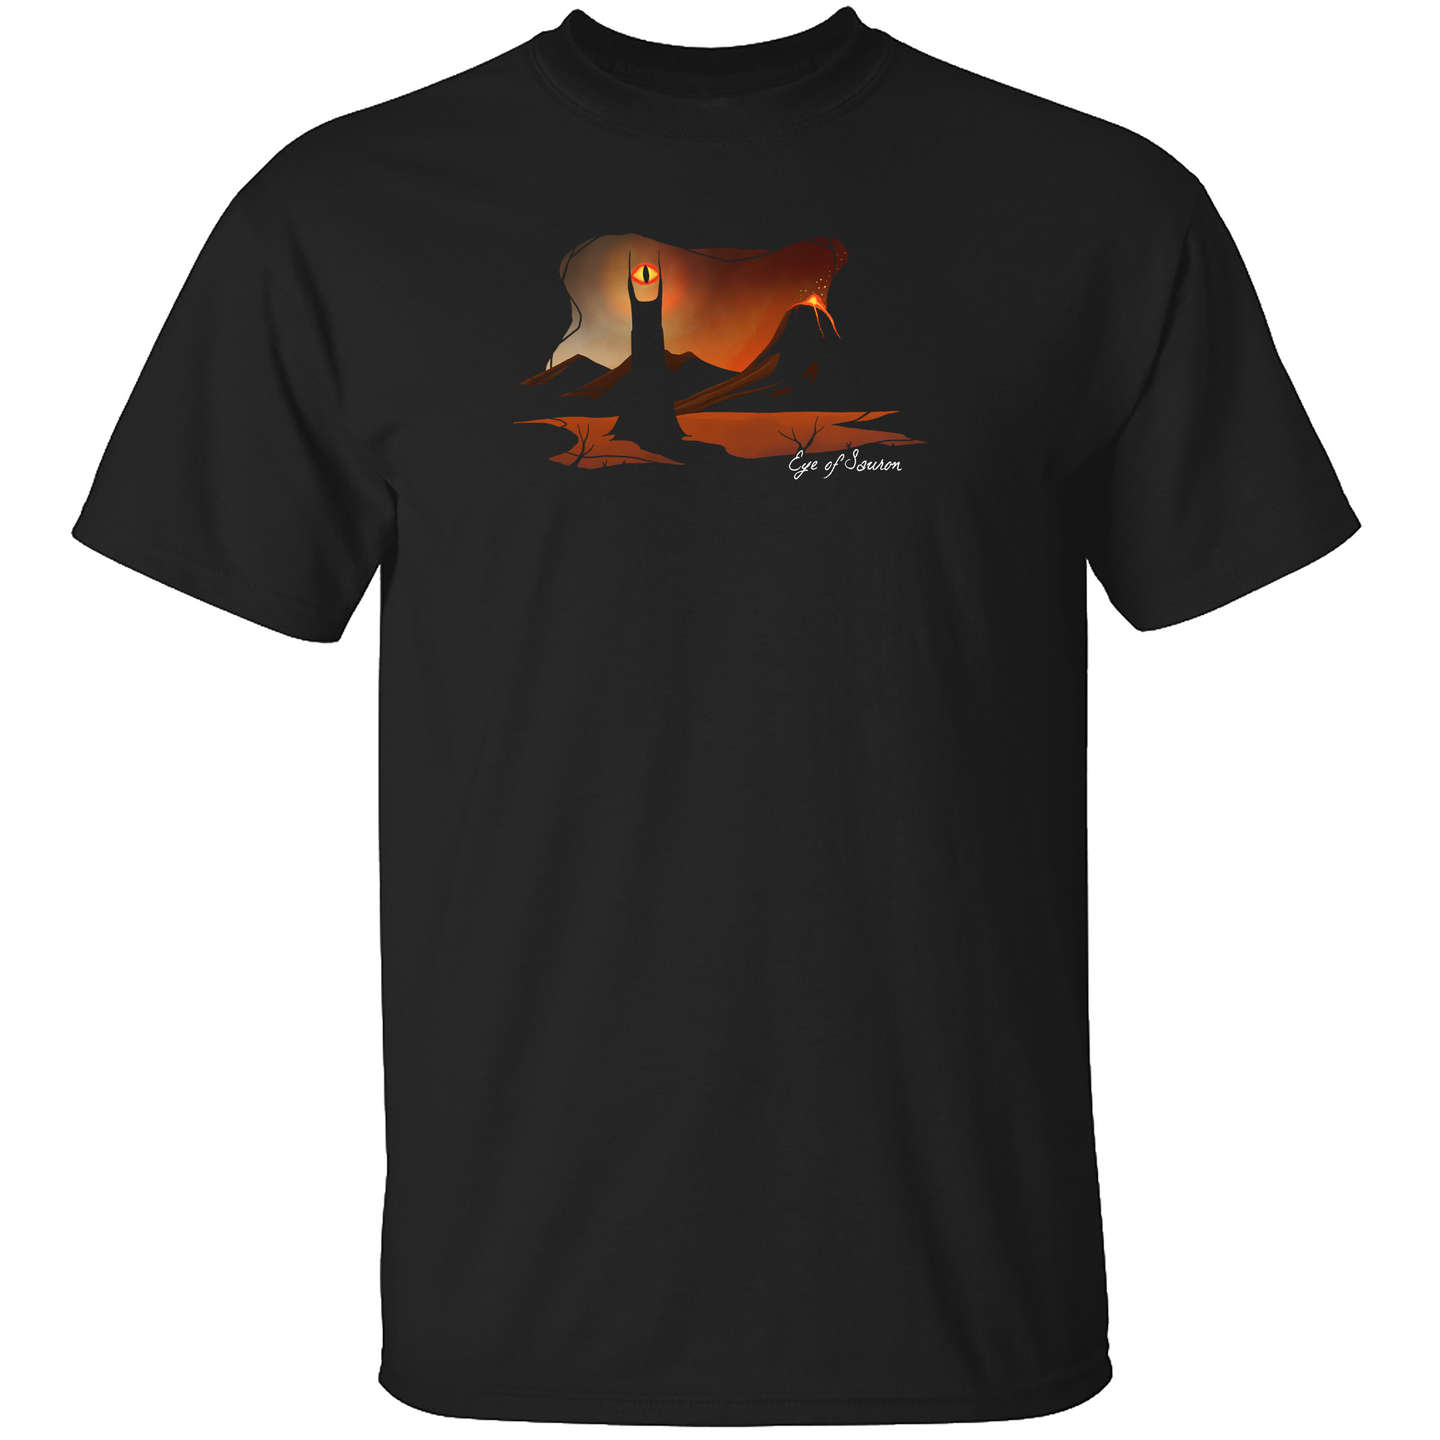 Eye of Sauron - Lord of the Rings T-Shirt